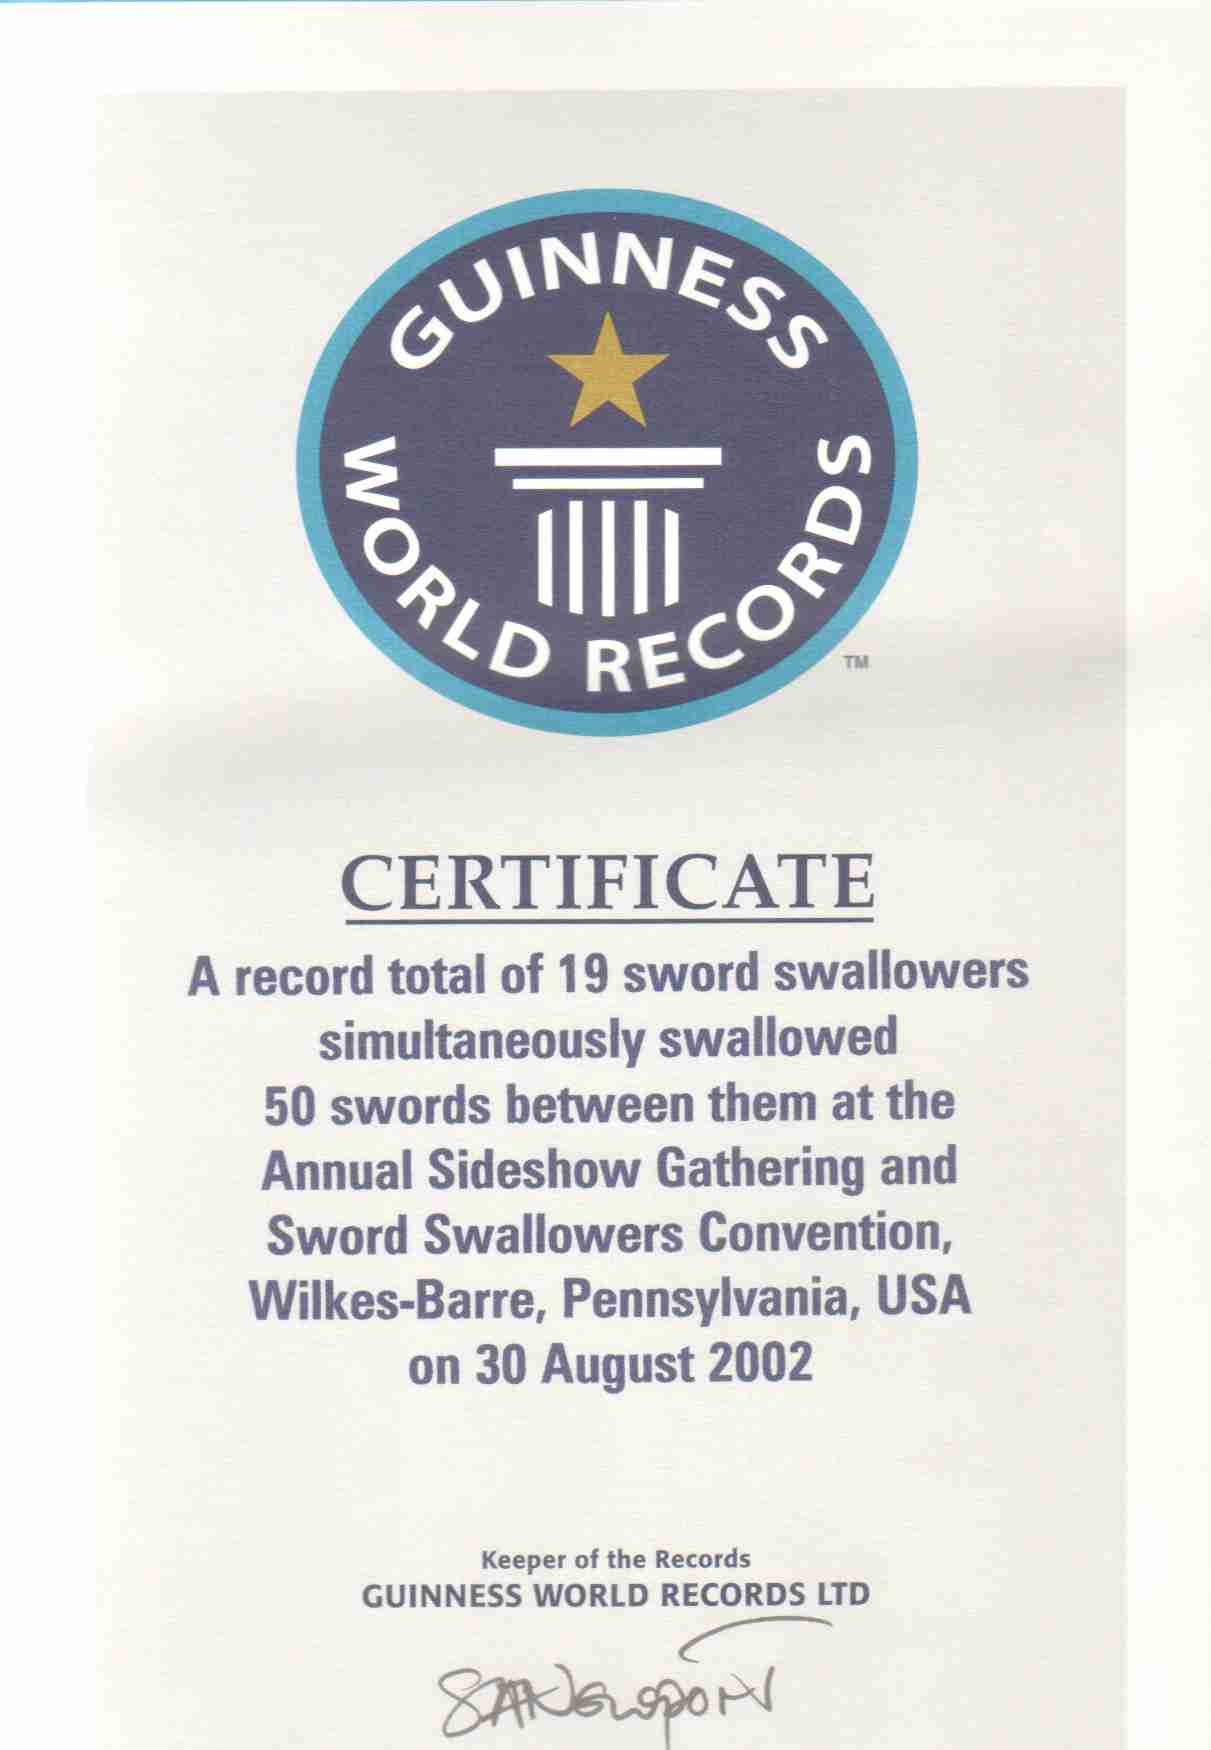 this record was certified an official guinness world record